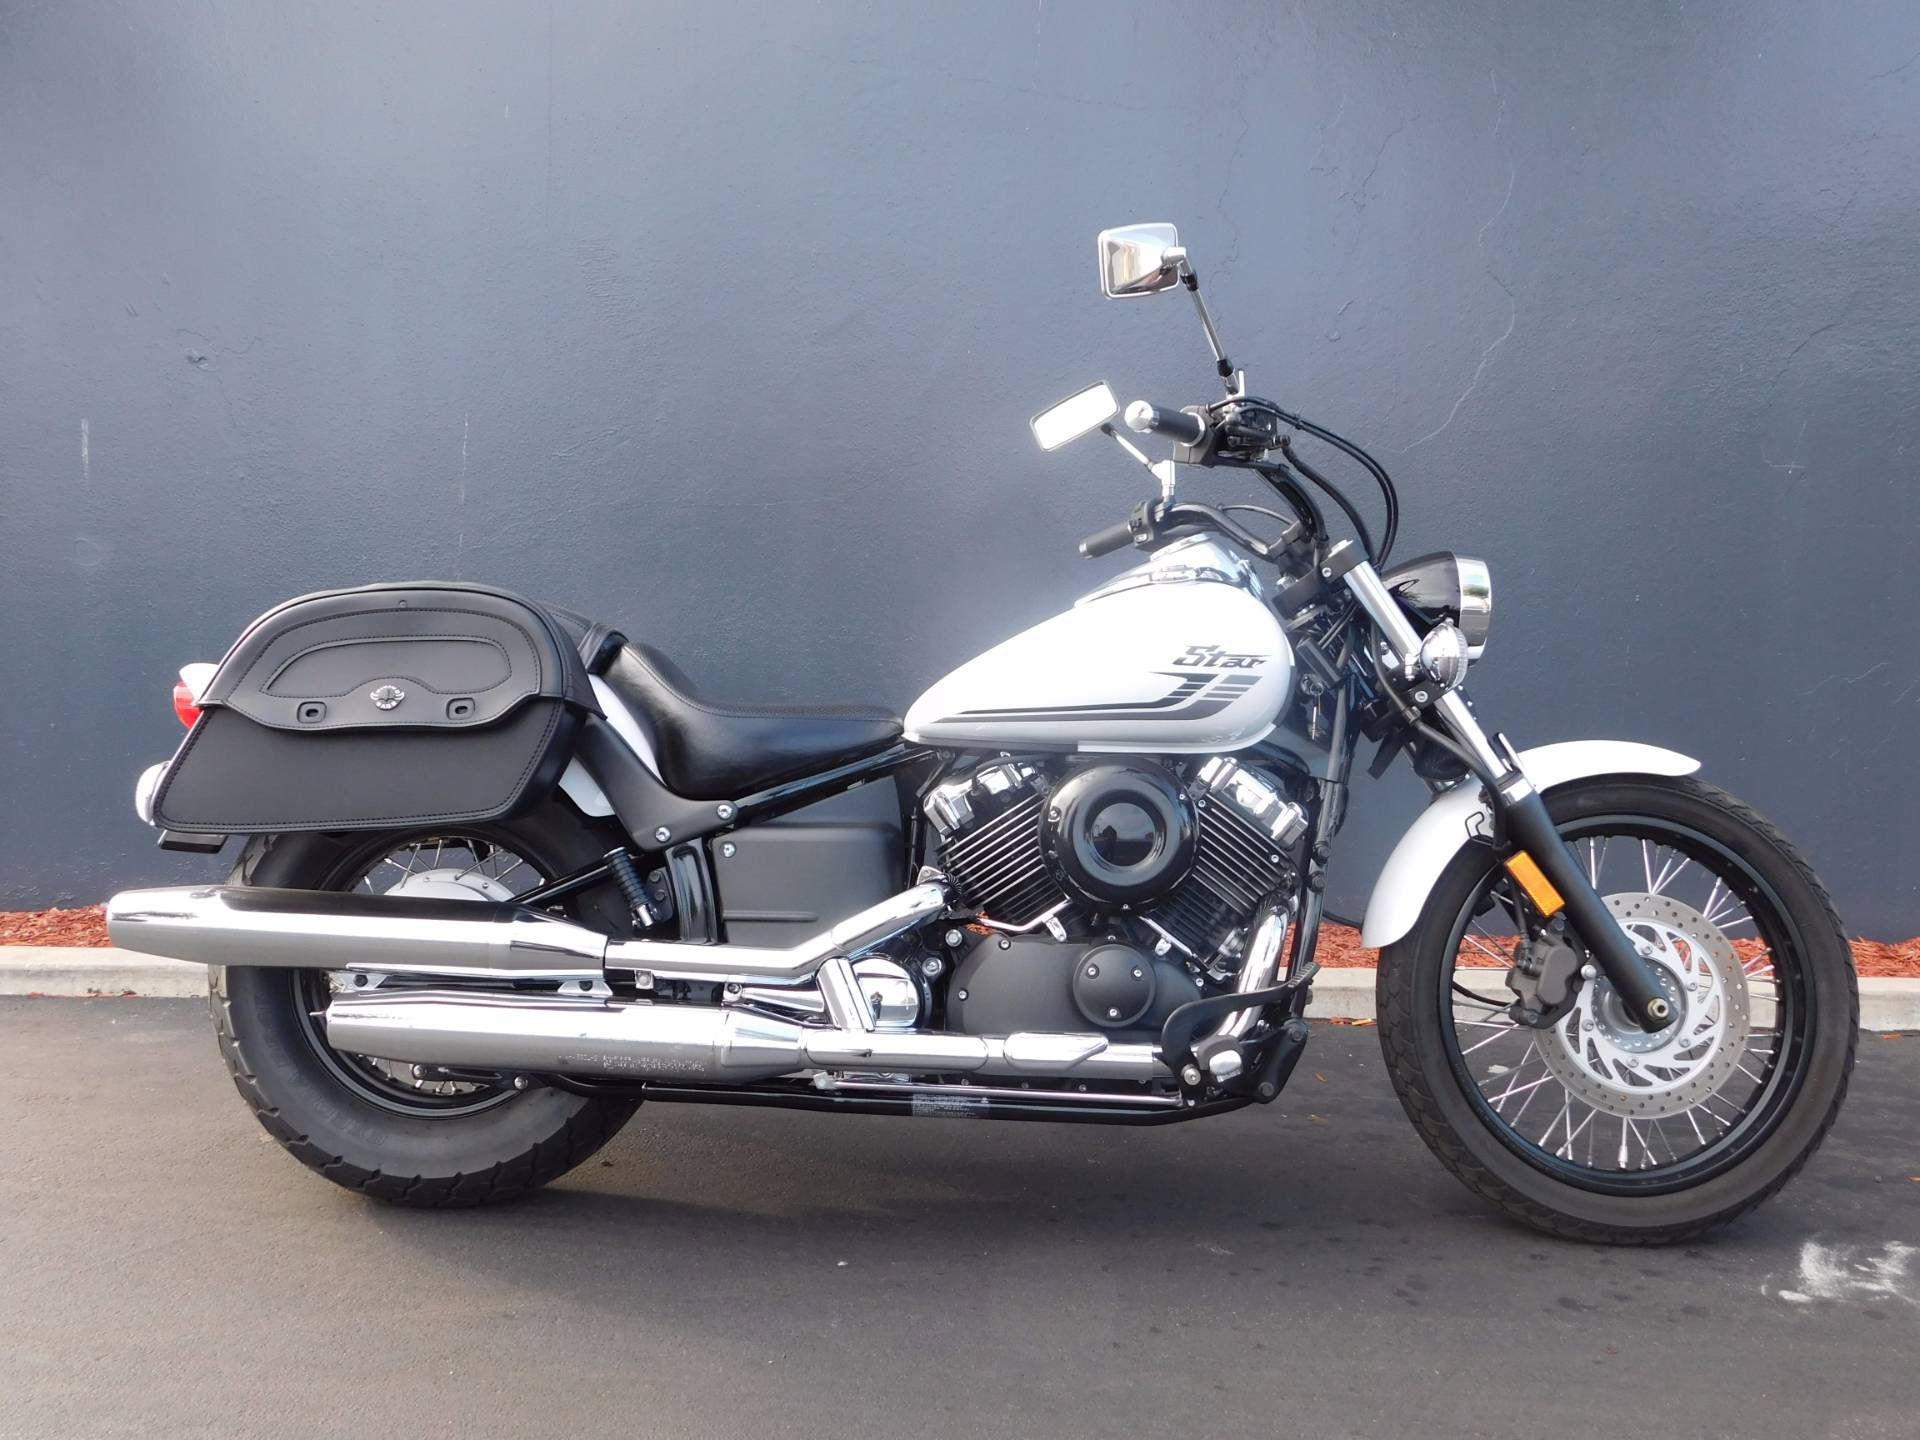 2016 Yamaha V Star 650 Custom in Chula Vista, California - Photo 1